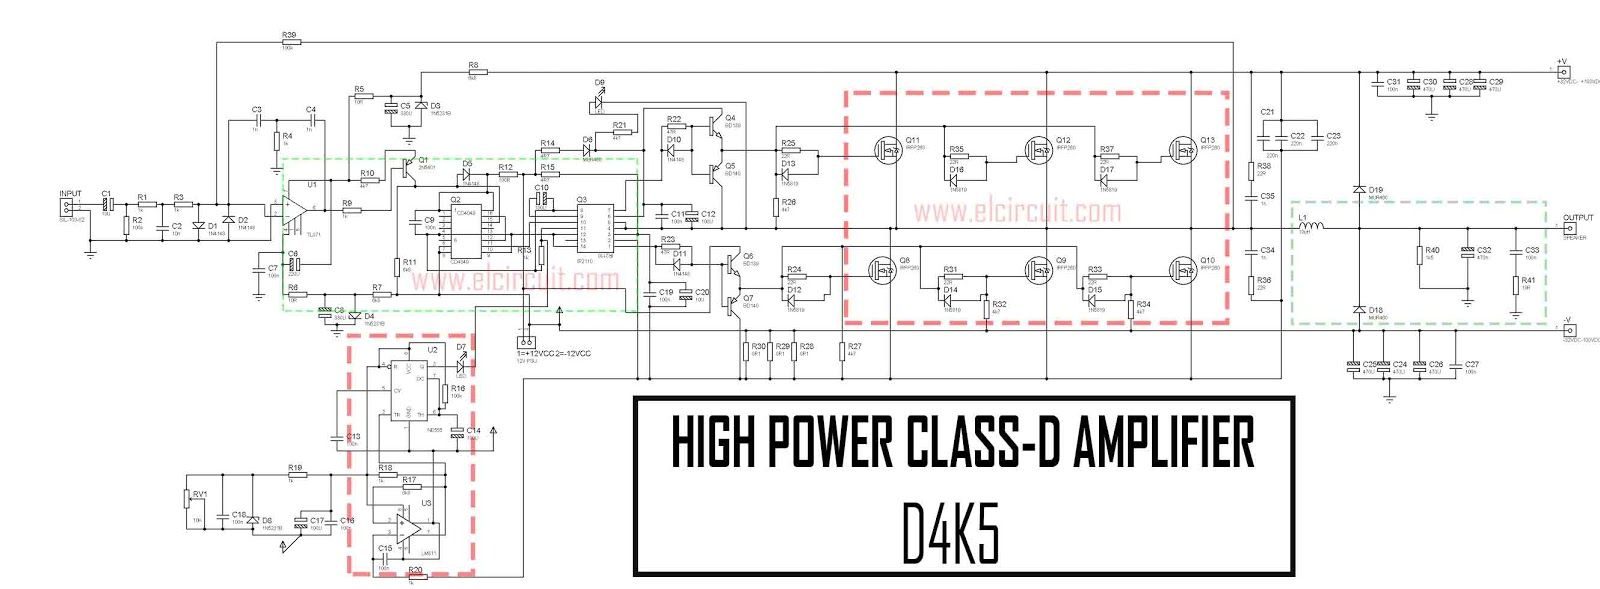 high power lifier circuit diagram besides h bridge inverter circuit high power class d amplifier d4k5 [ 1600 x 589 Pixel ]